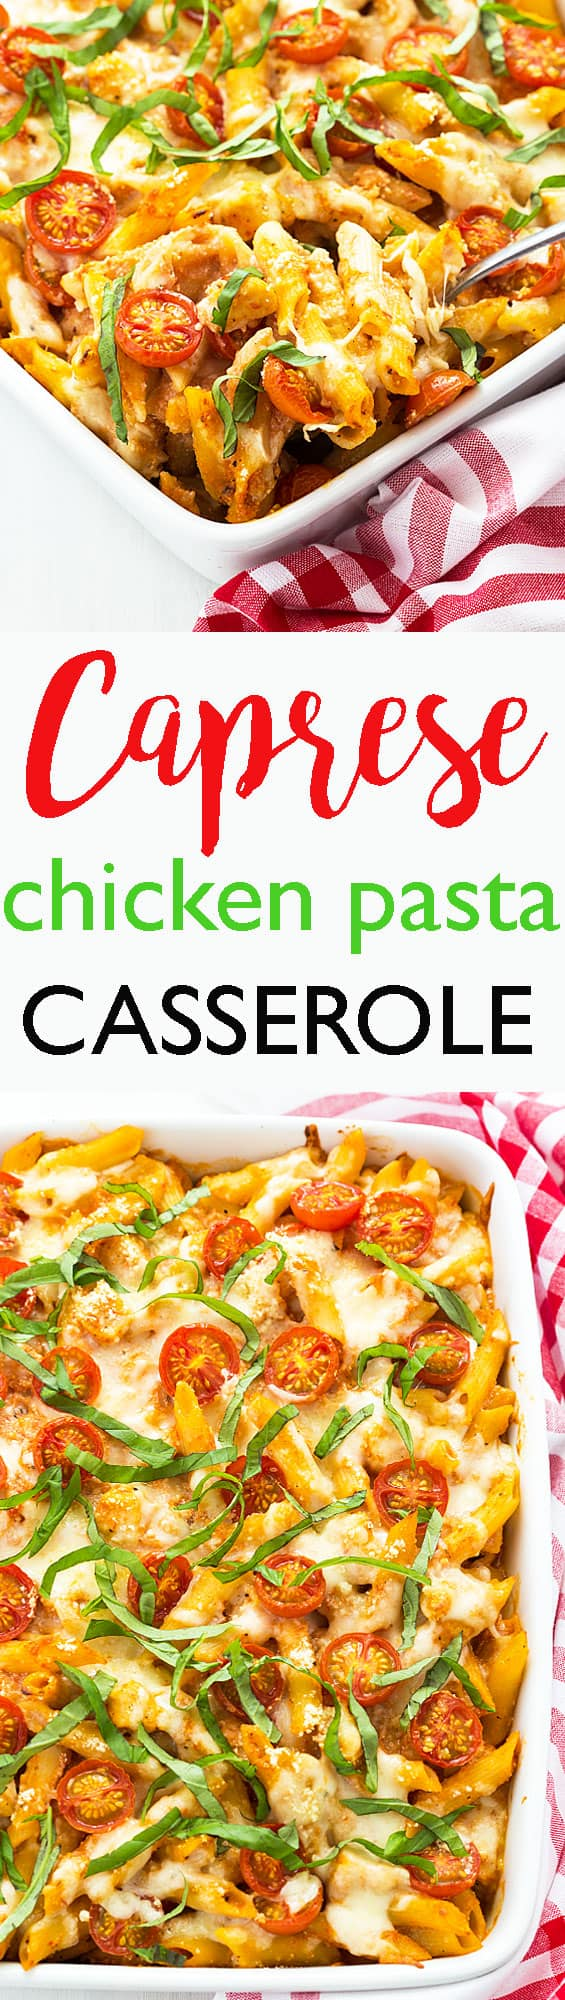 """Two images of Chicken Caprese Pasta Casserole - Text in center reads, """"Caprese Chicken Pasta Casserole"""""""